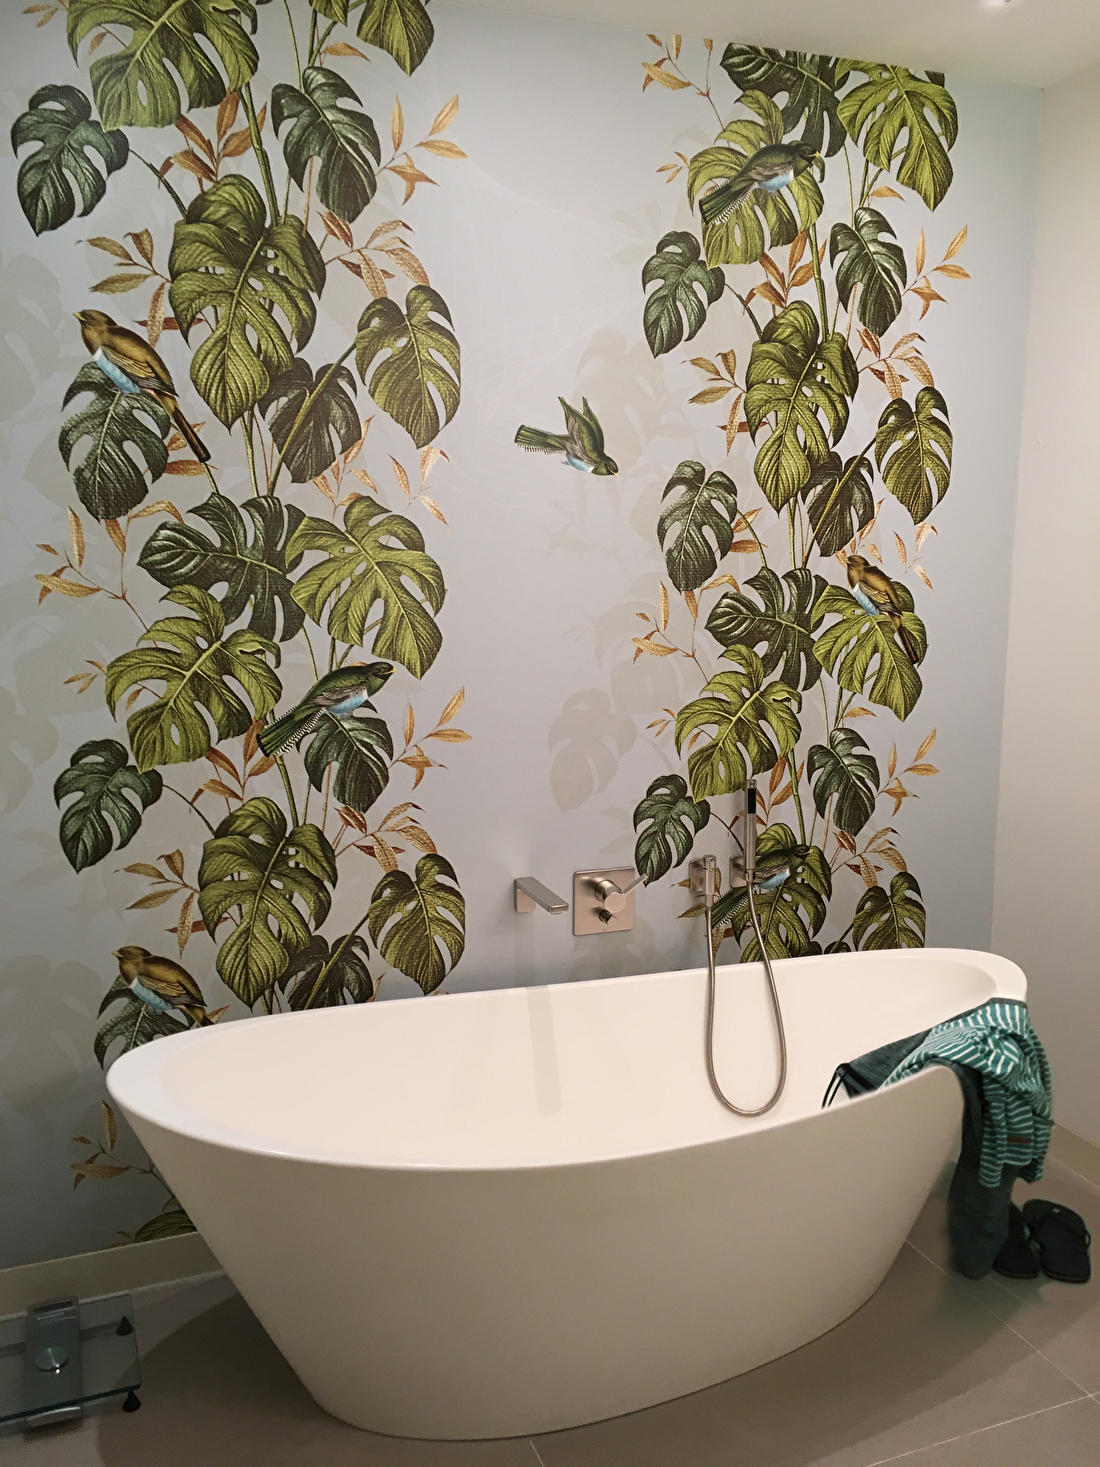 dutch dahlia's design wallpaper saskia van der linden